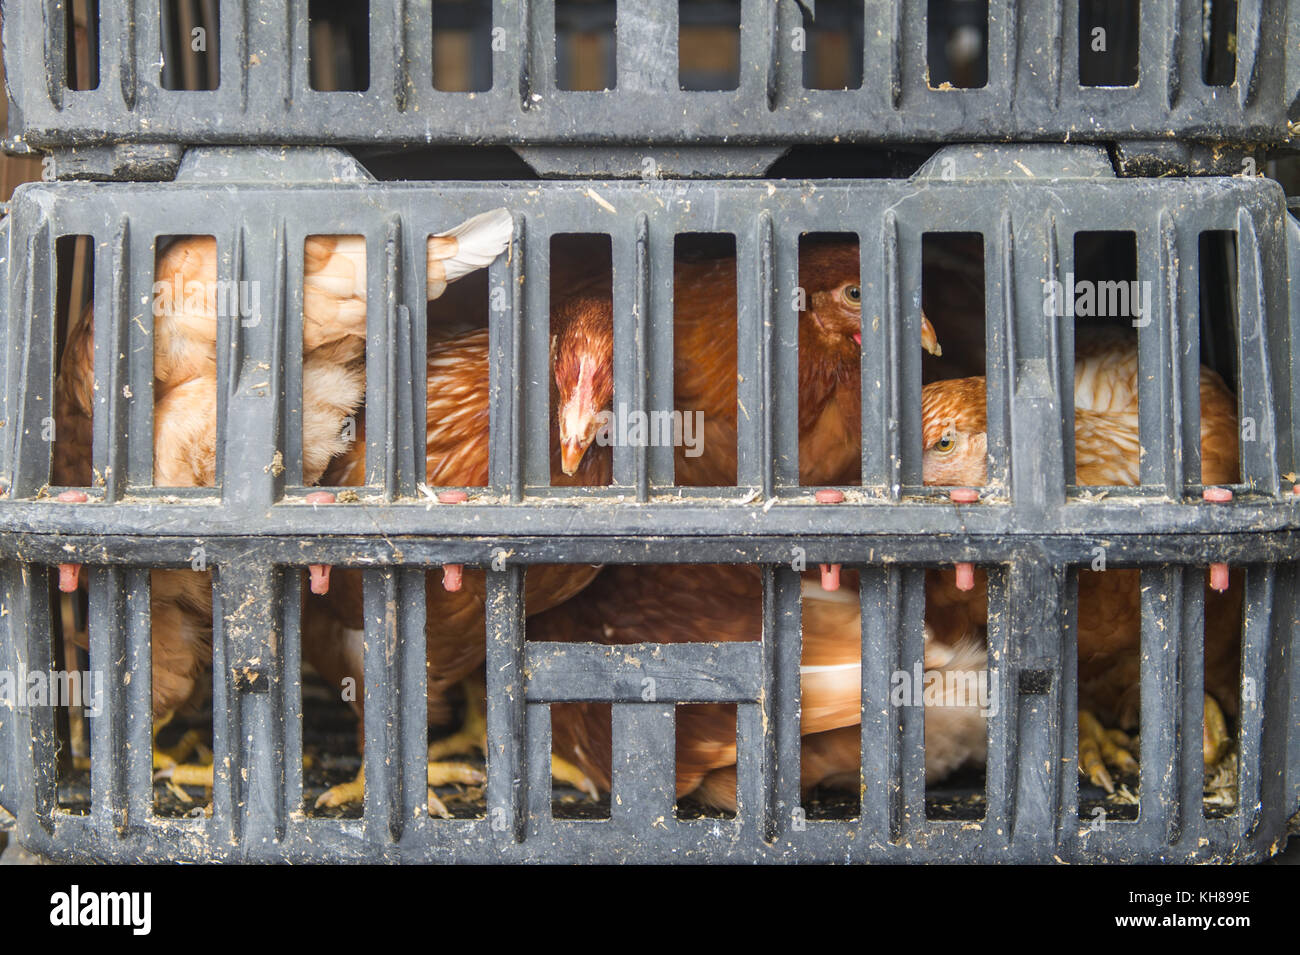 hens-in-a-grey-crate-ready-for-sale-at-s